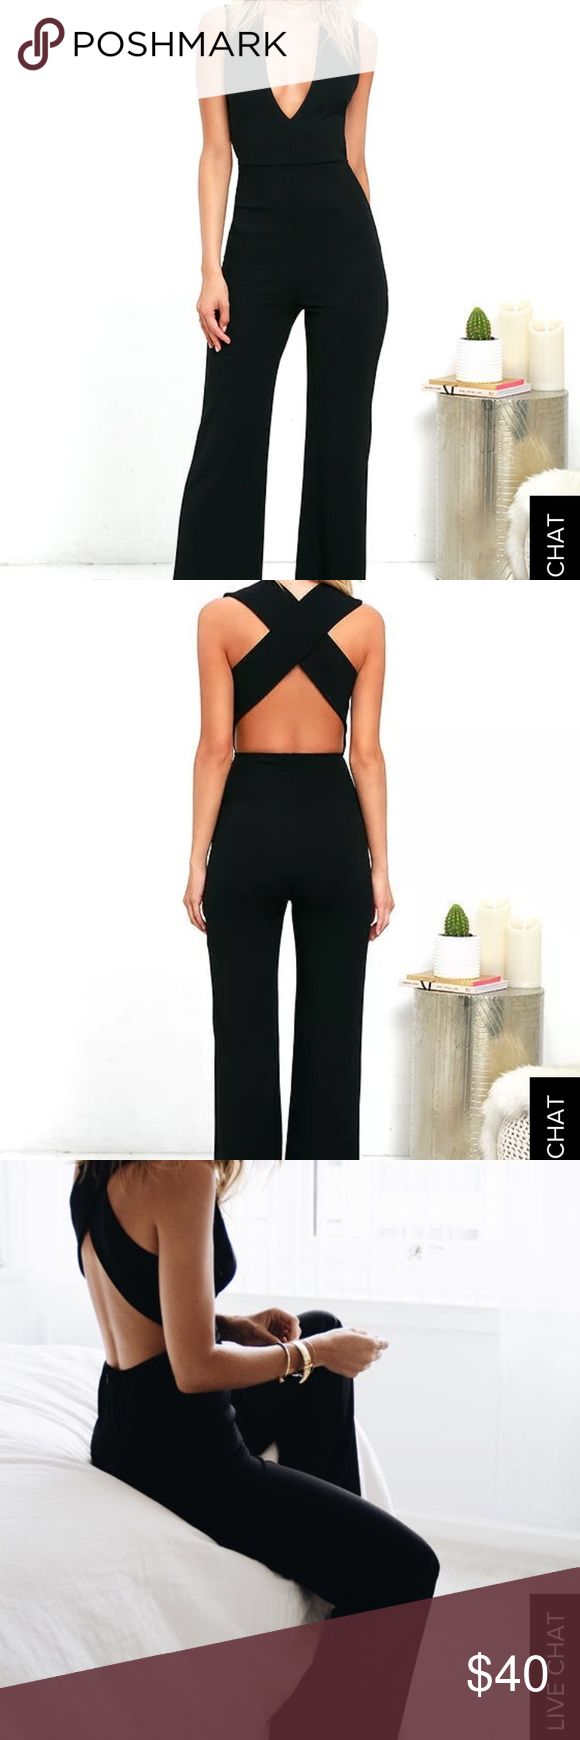 NWT Black Jumpsuit Brand new with tags. Lulu's Thinking Out Loud Black Jumpsuit. Lulu's Dresses